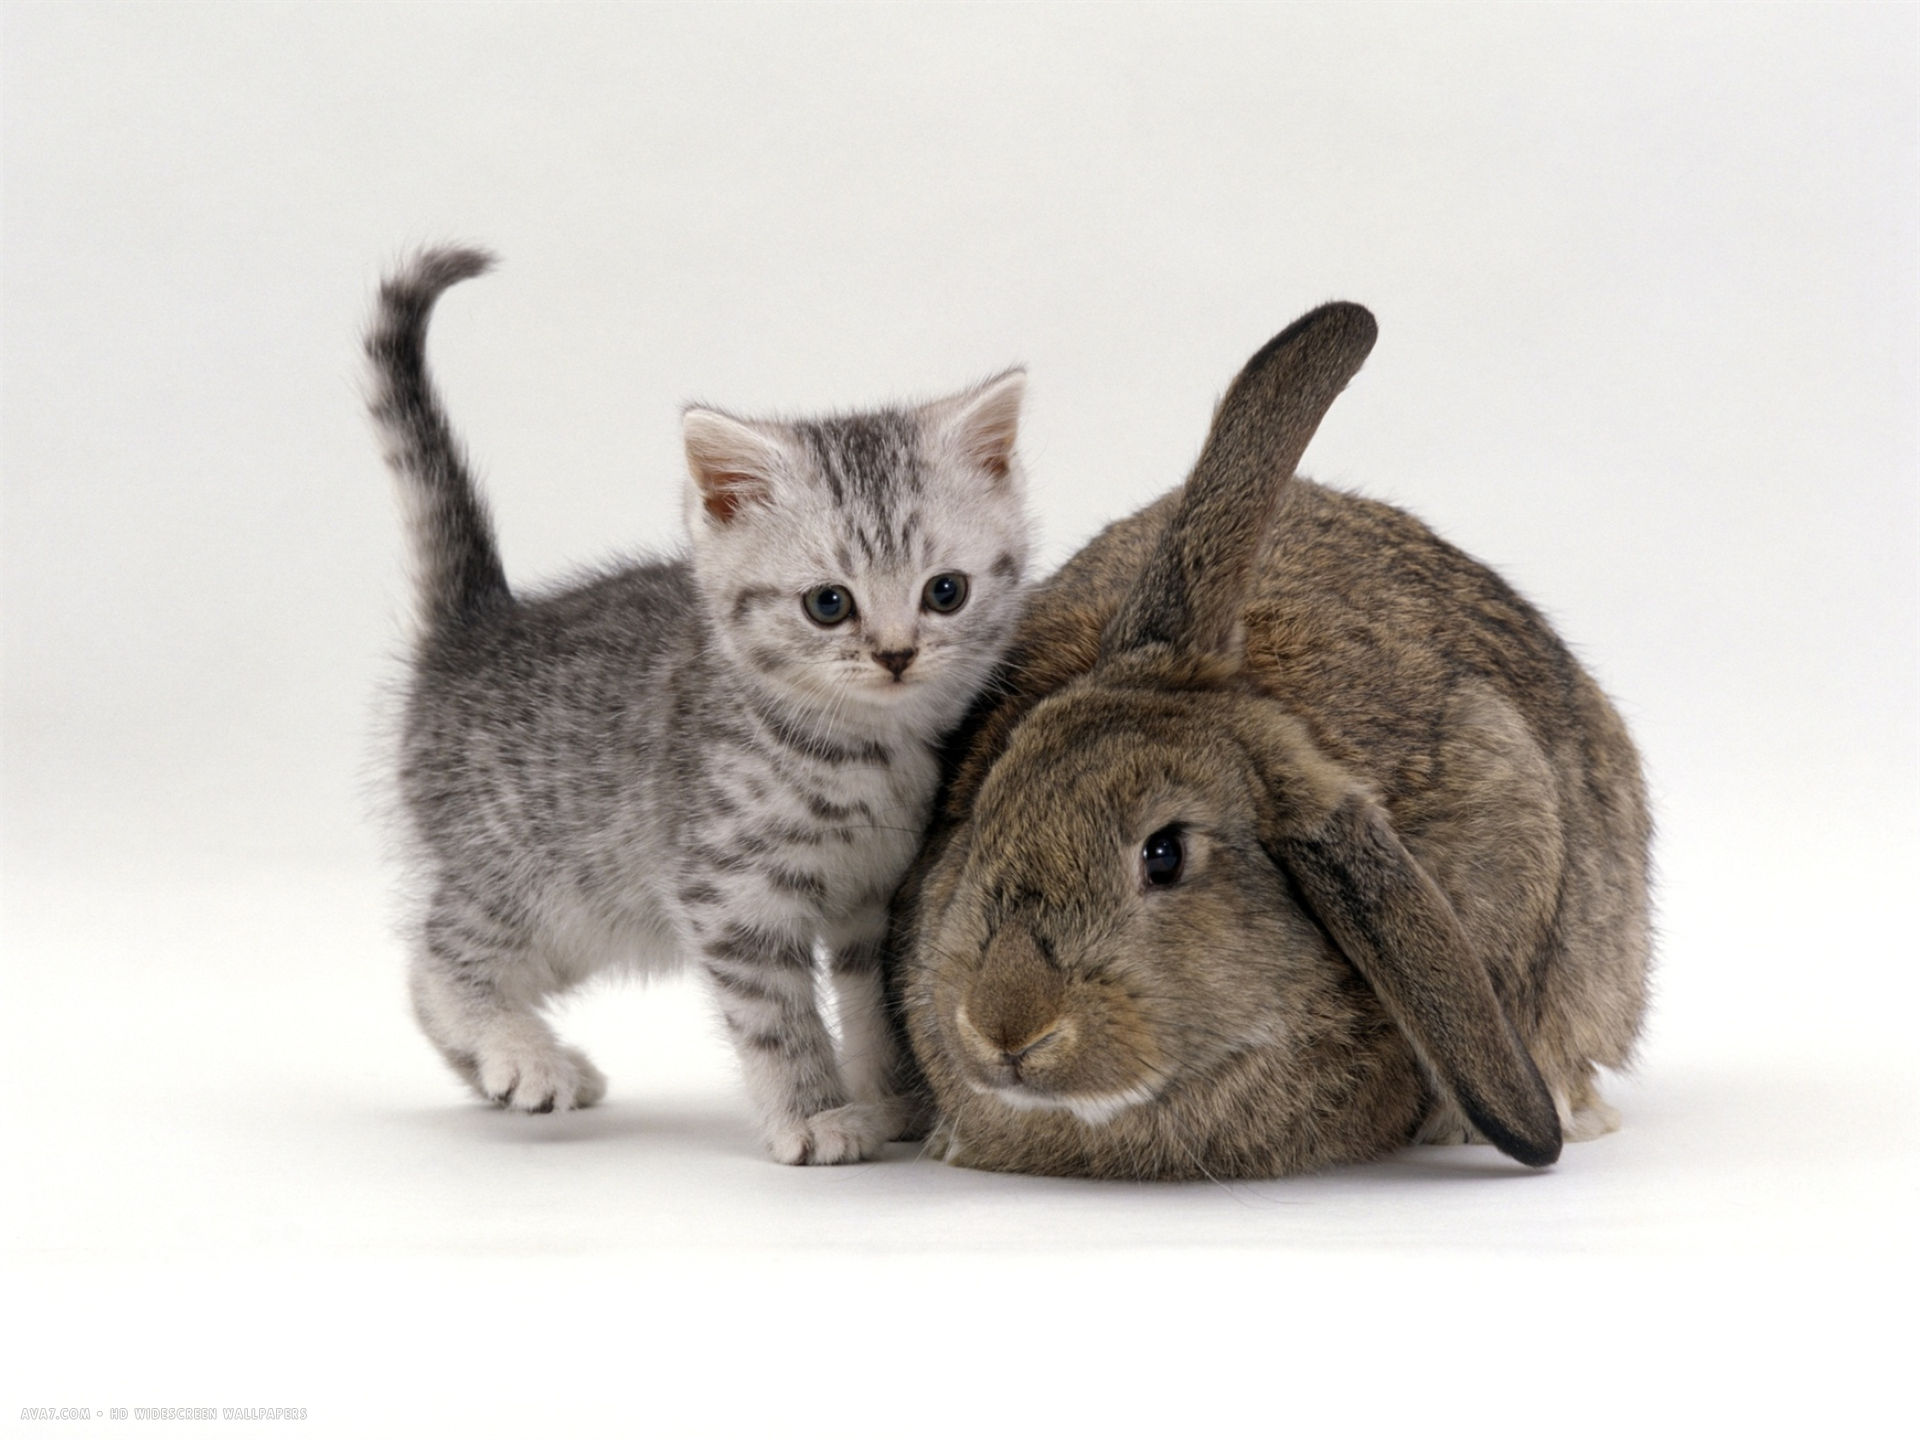 Tablet Wallpaper Hd Silver Spotted Kitten With Agouti Lop Rabbit Cats And